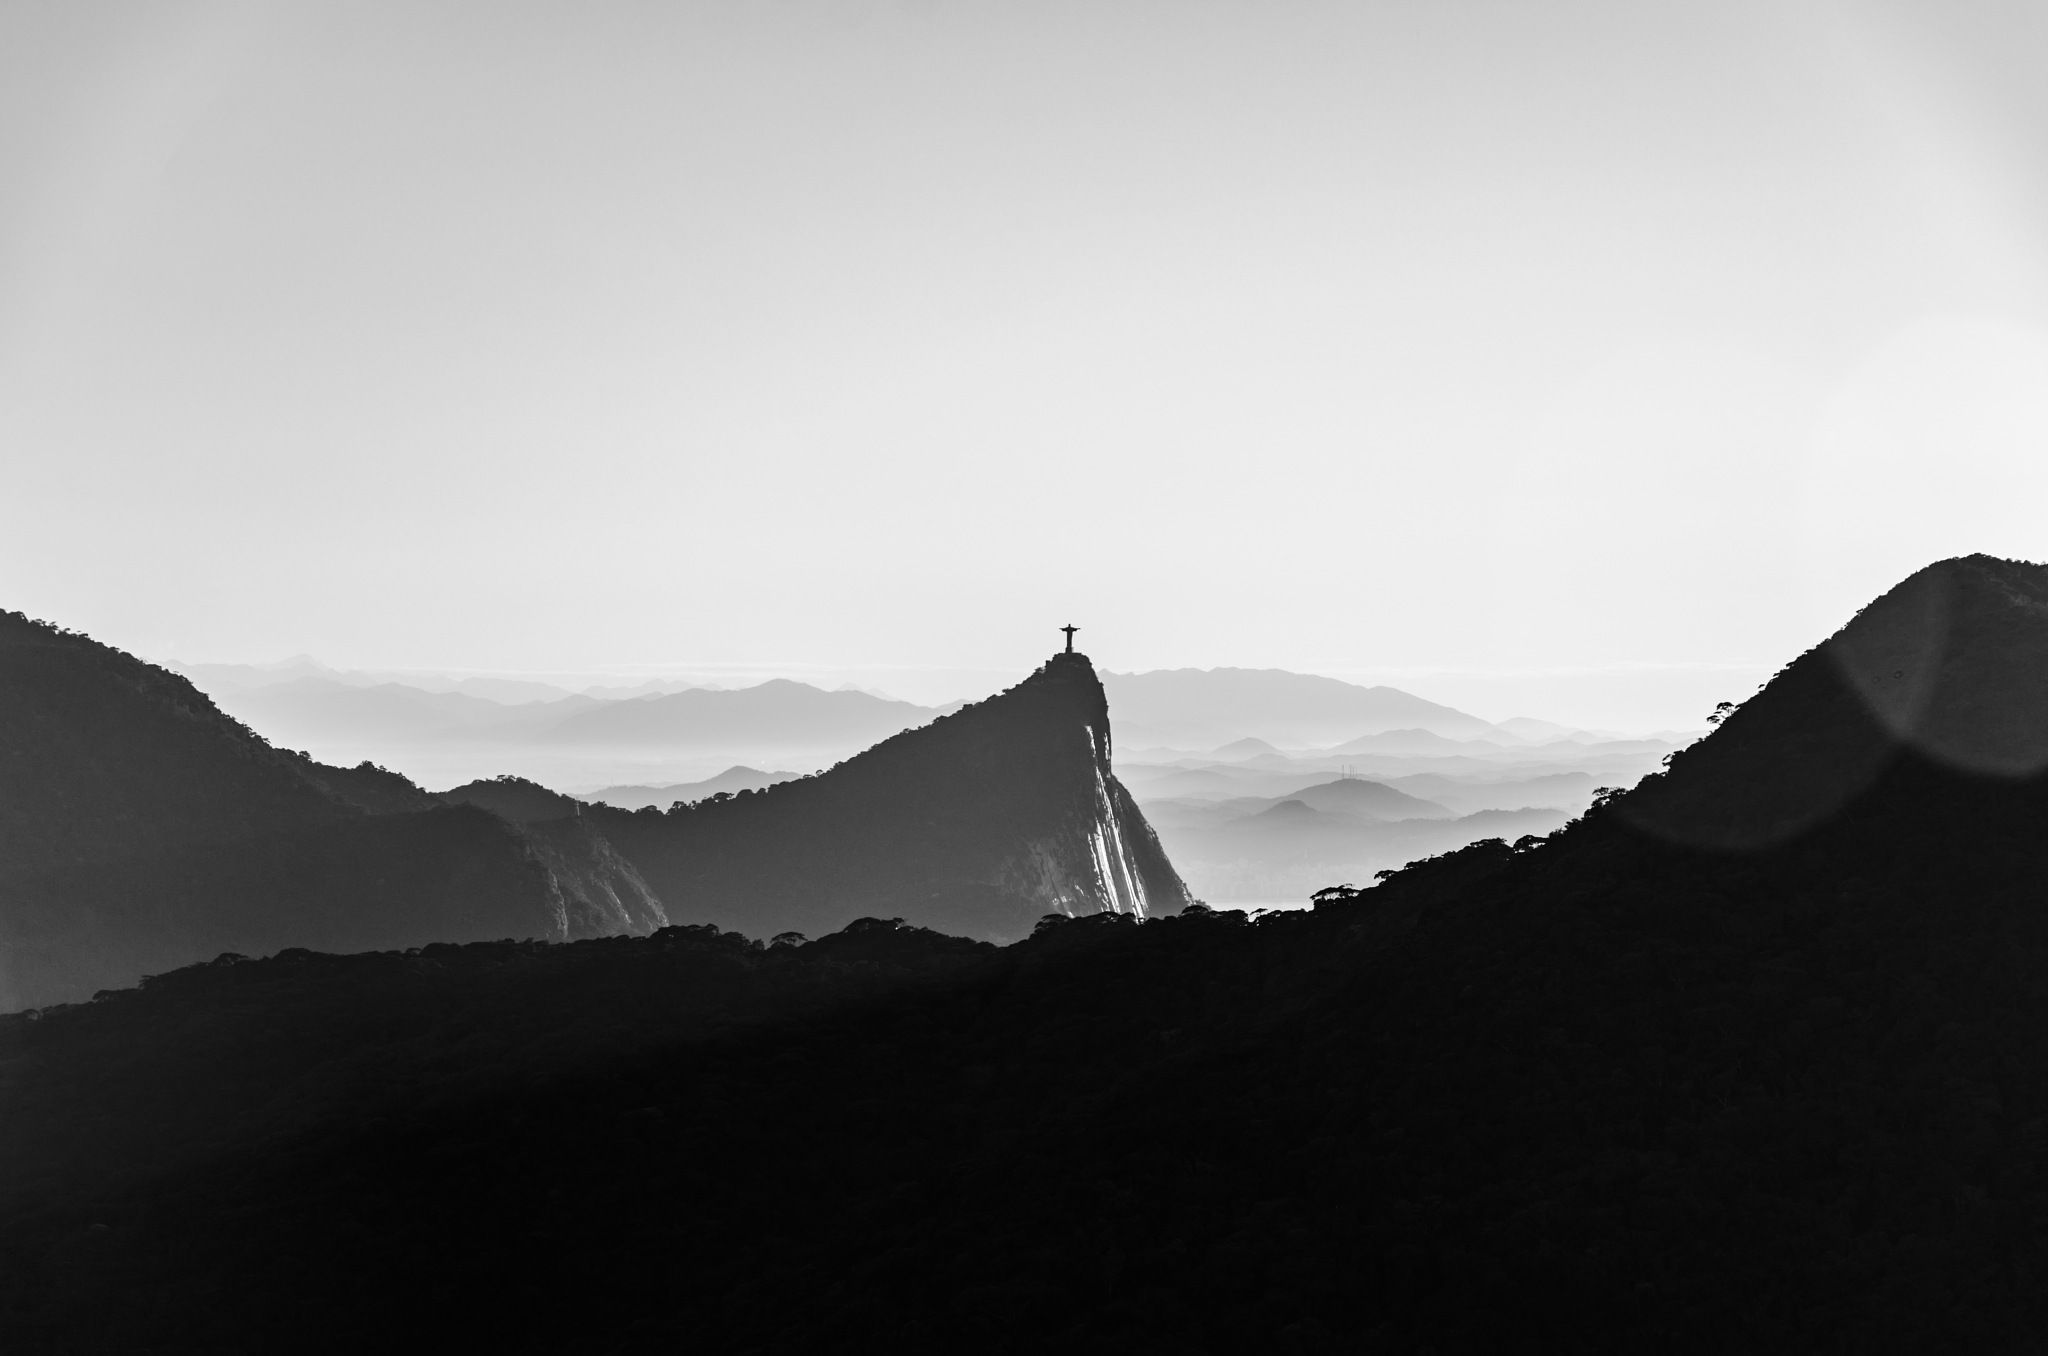 Christ the Redeemer by Paulo Felix